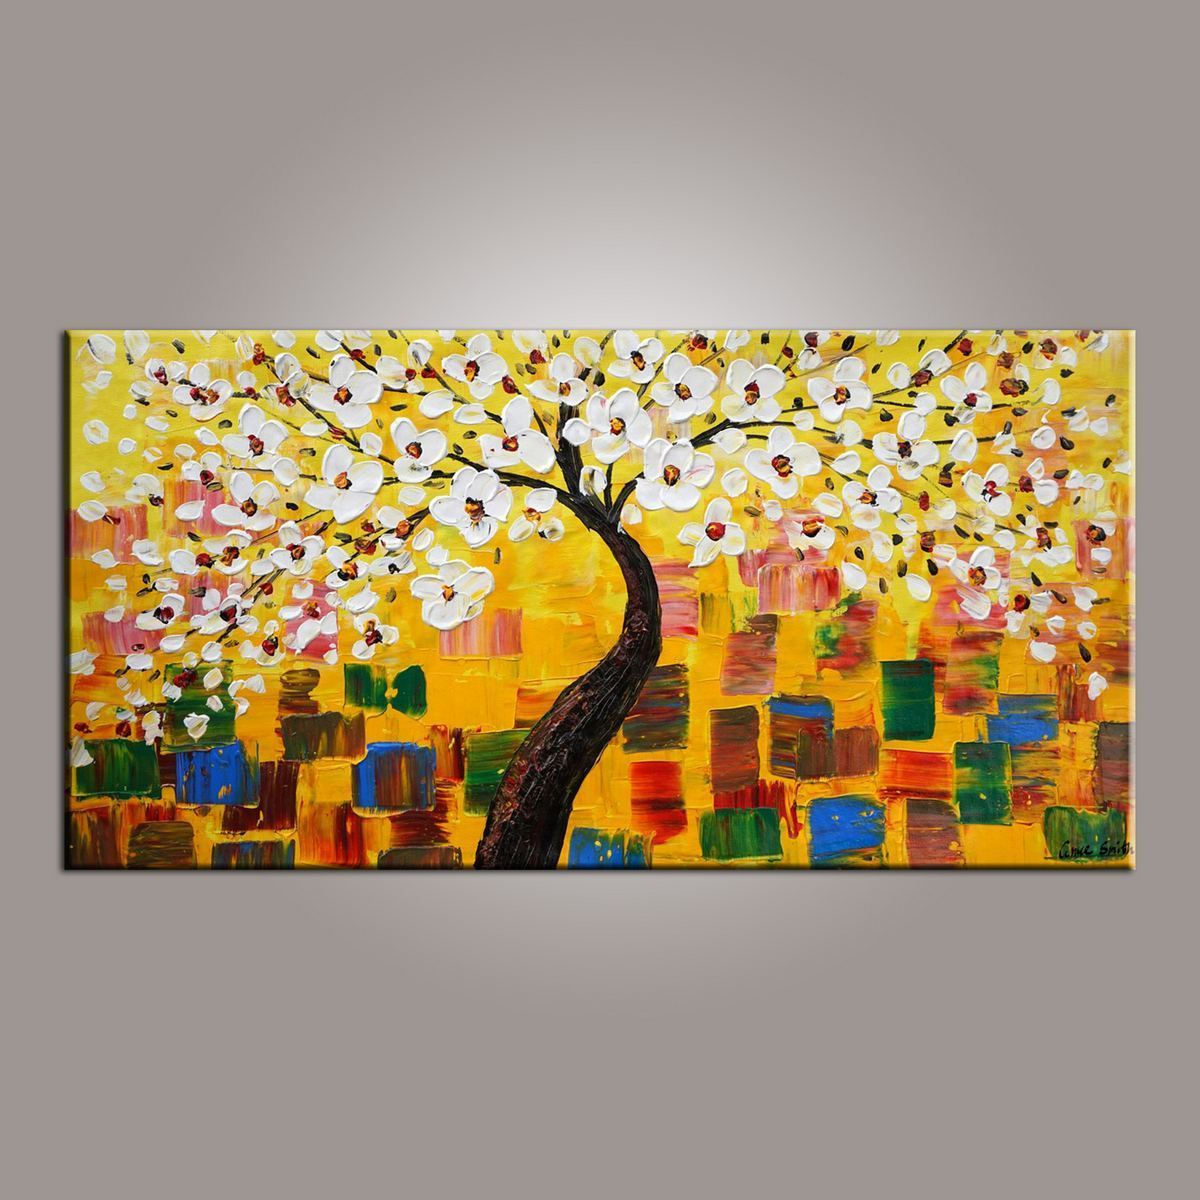 Painting on Sale, Flower Tree Painting, Abstract Art Painting, Canvas Wall Art, Dining Room Wall Art, Canvas Art, Modern Art, Contemporary Art - artworkcanvas